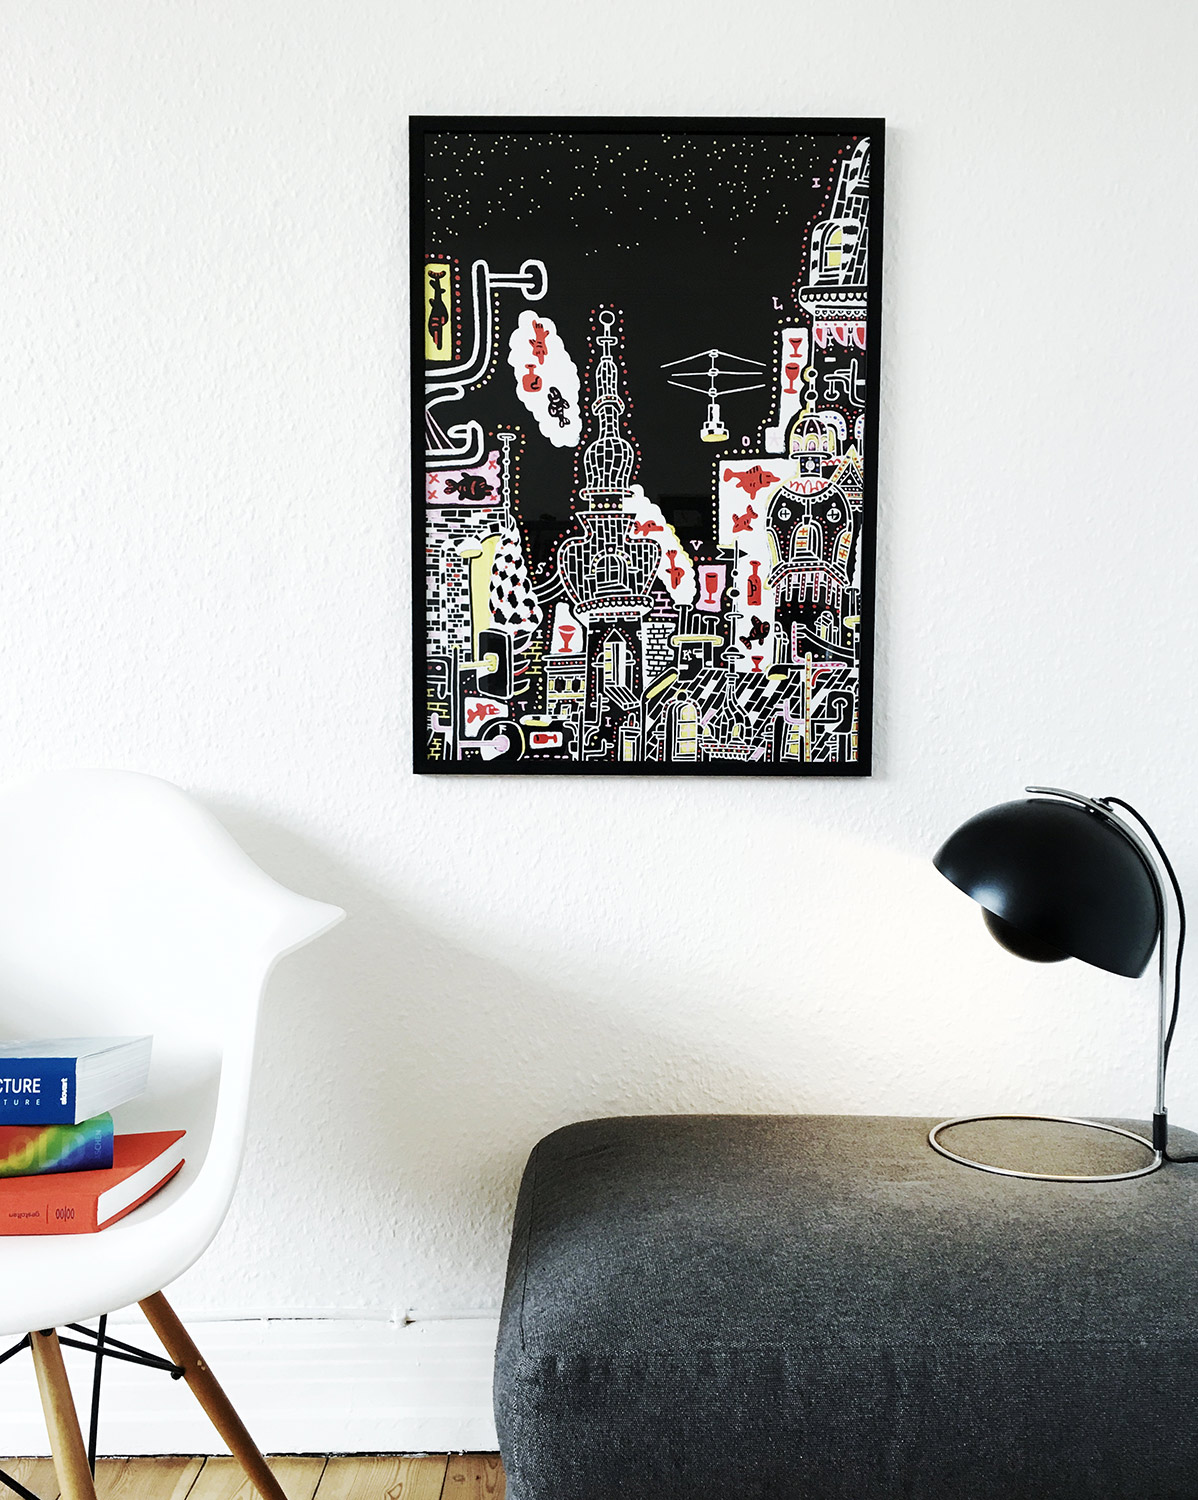 art-prints, giclee, animal, colorful, geometric, pop, architecture, patterns, pets, sky, black, red, white, yellow, ink, paper, architectural, atmosphere, buildings, copenhagen, danish, decorative, design, interior, interior-design, nordic, scandinavien, street-art, vivid, Buy original high quality art. Paintings, drawings, limited edition prints & posters by talented artists.